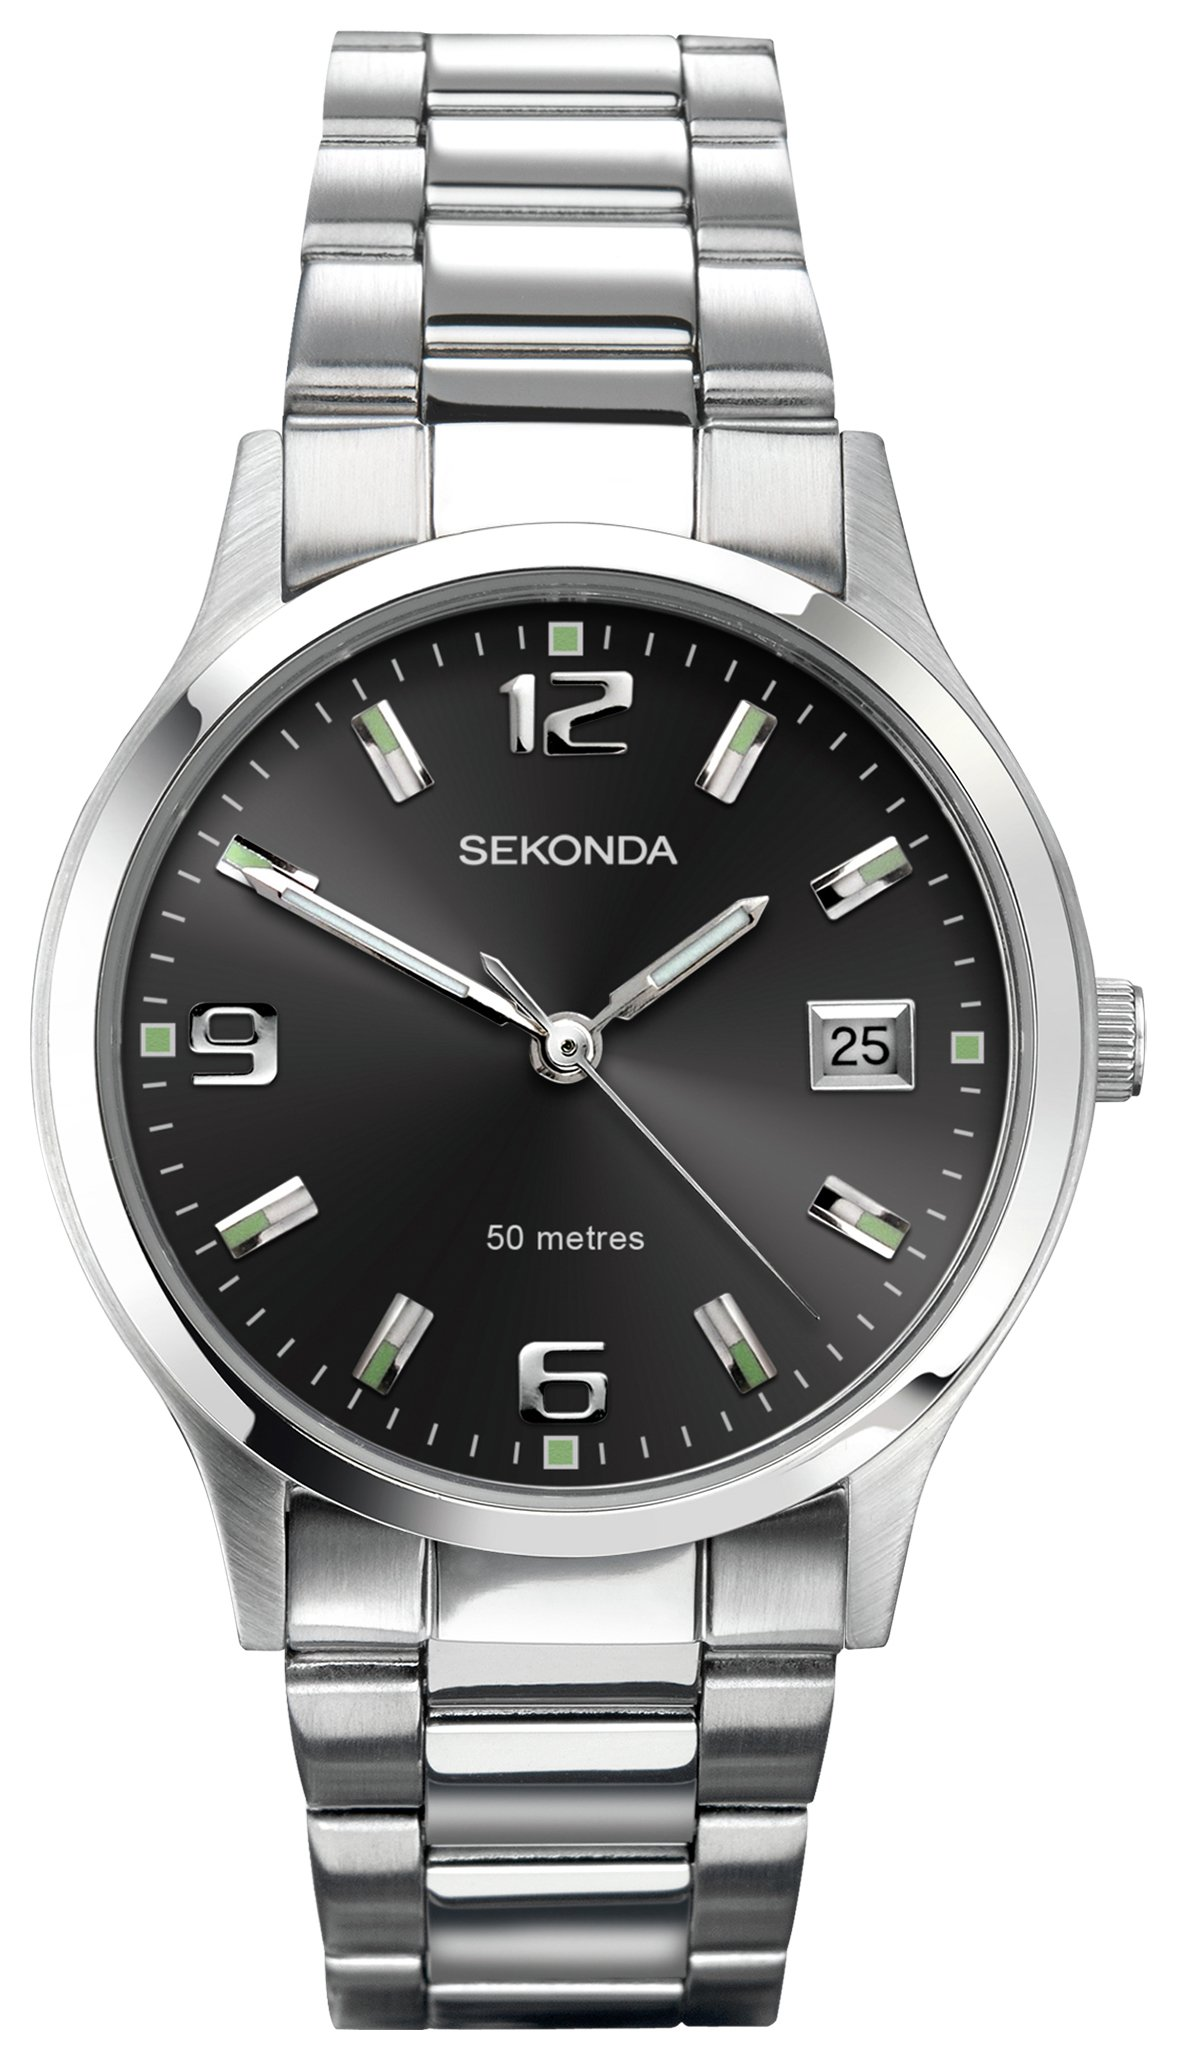 Sekonda Men's Stainless Steel Braclet Watch